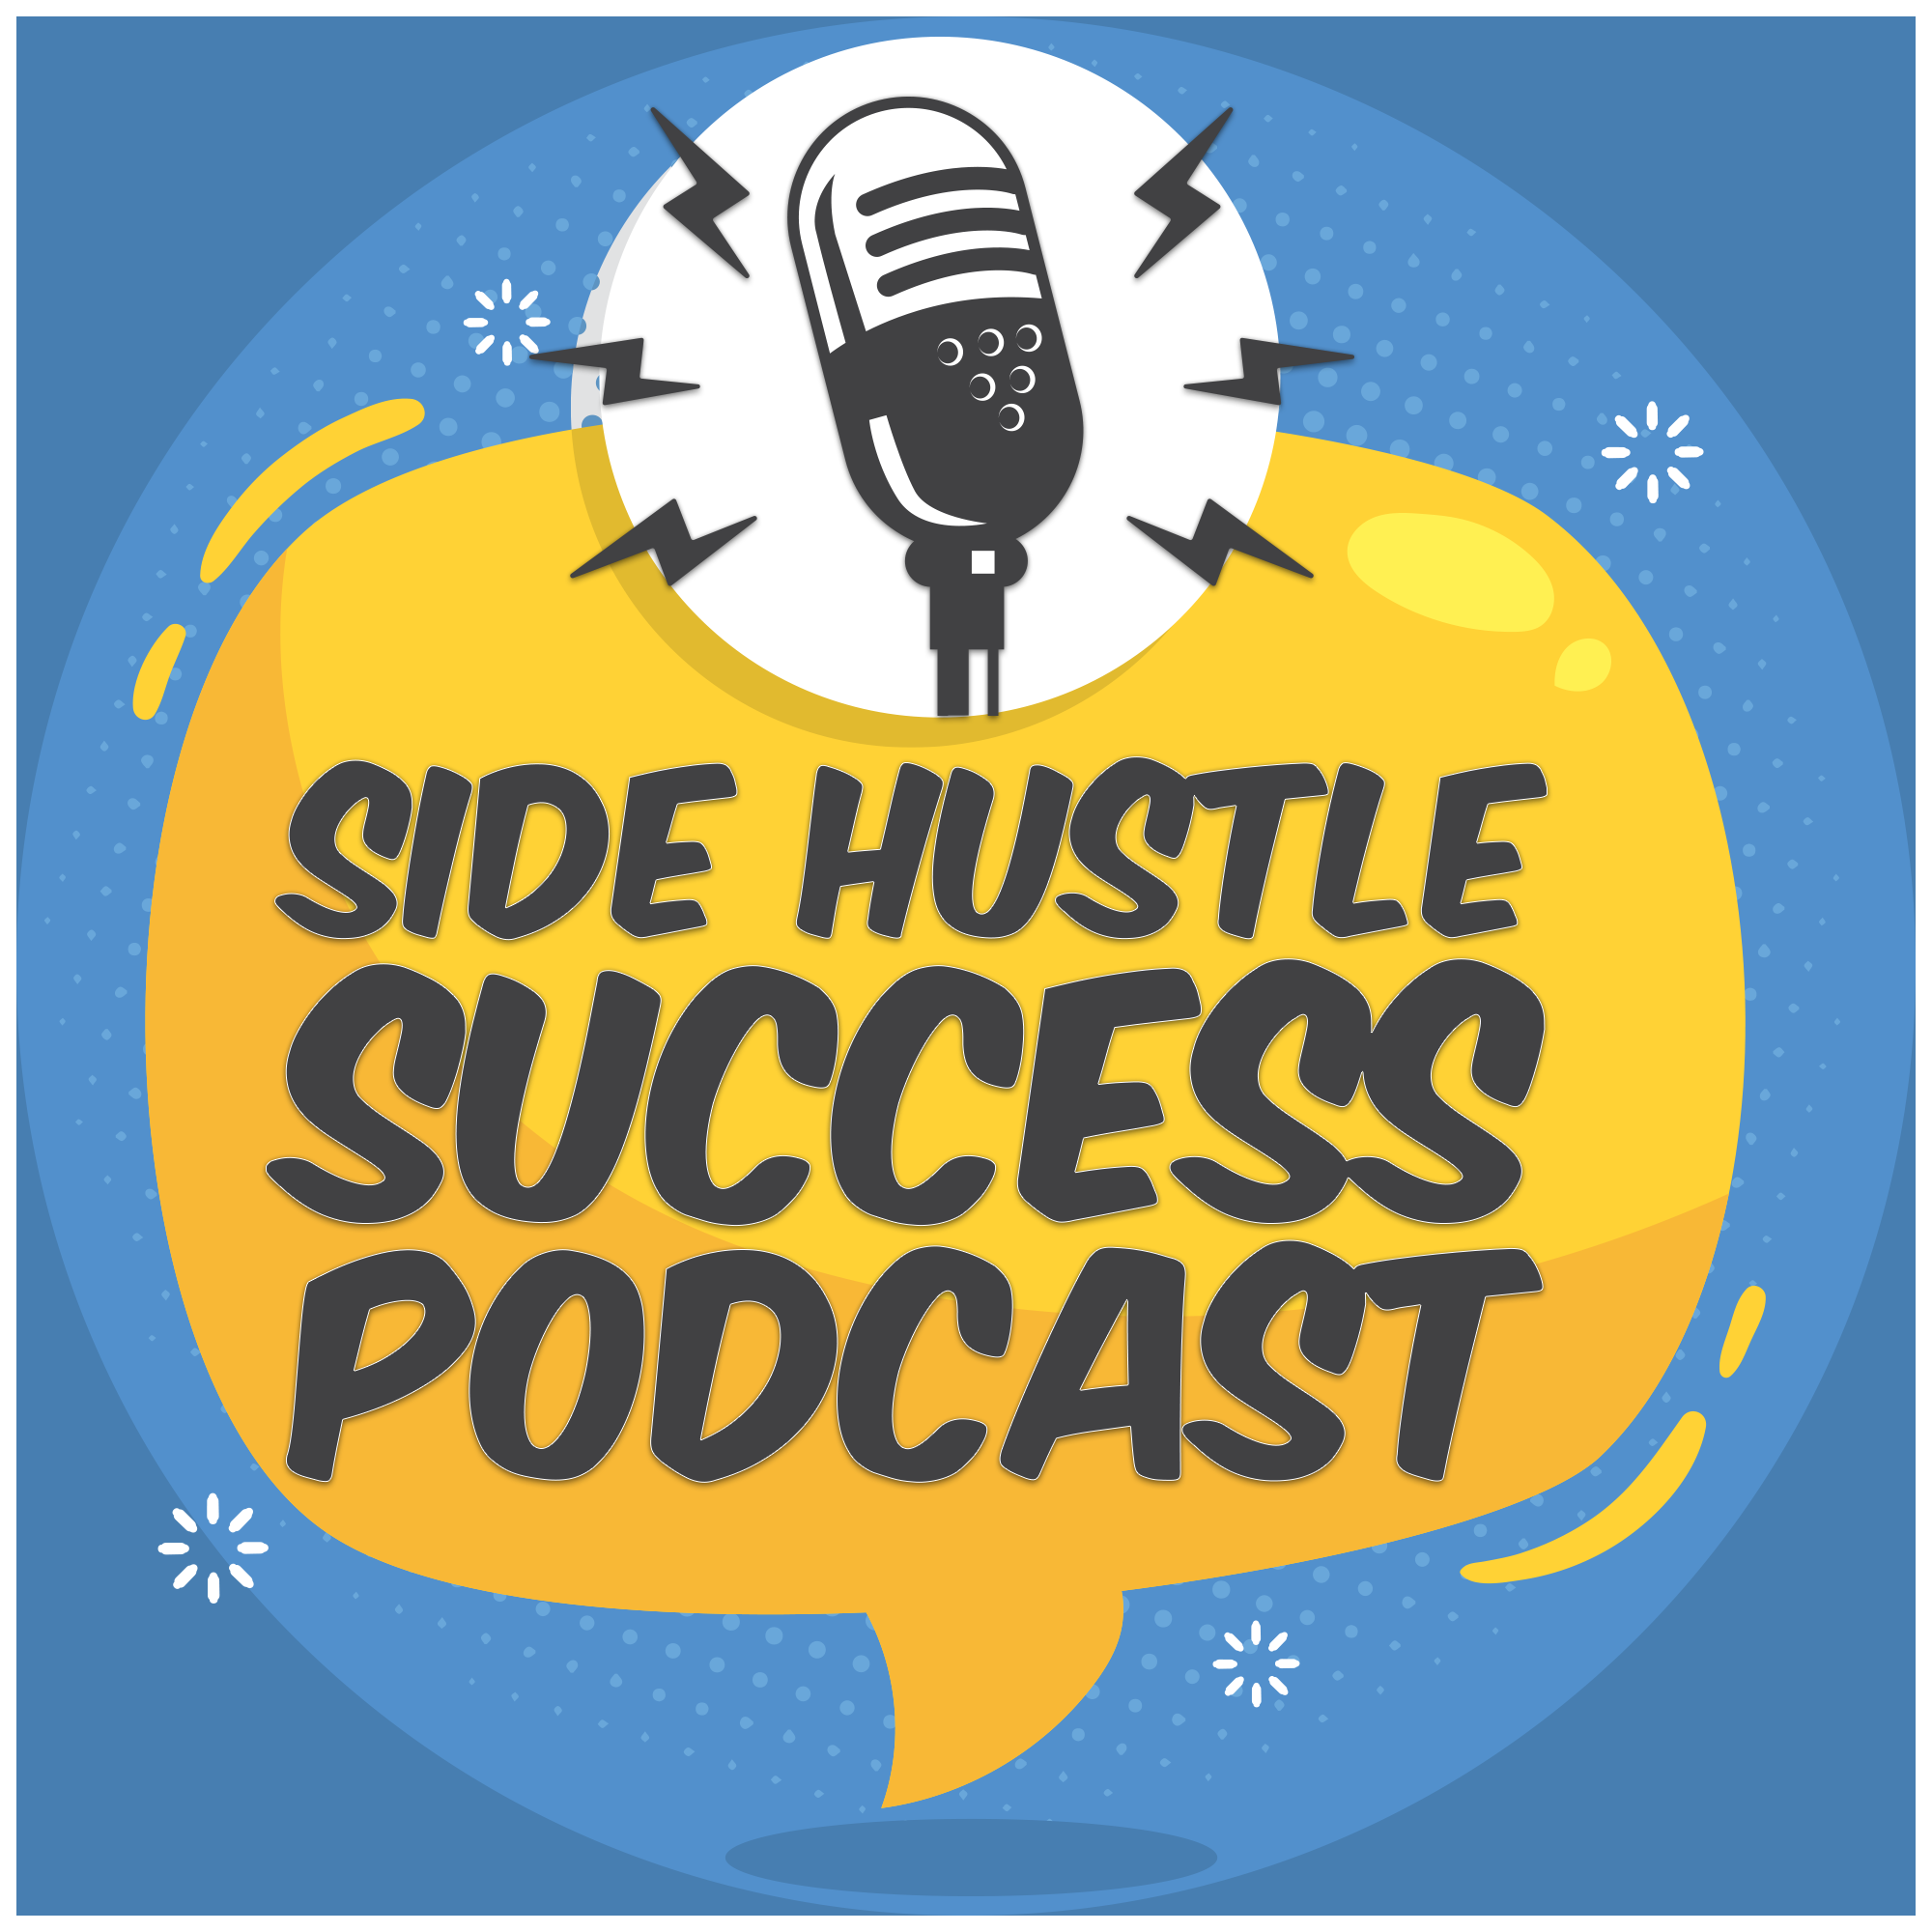 Side Hustle Success Podcast